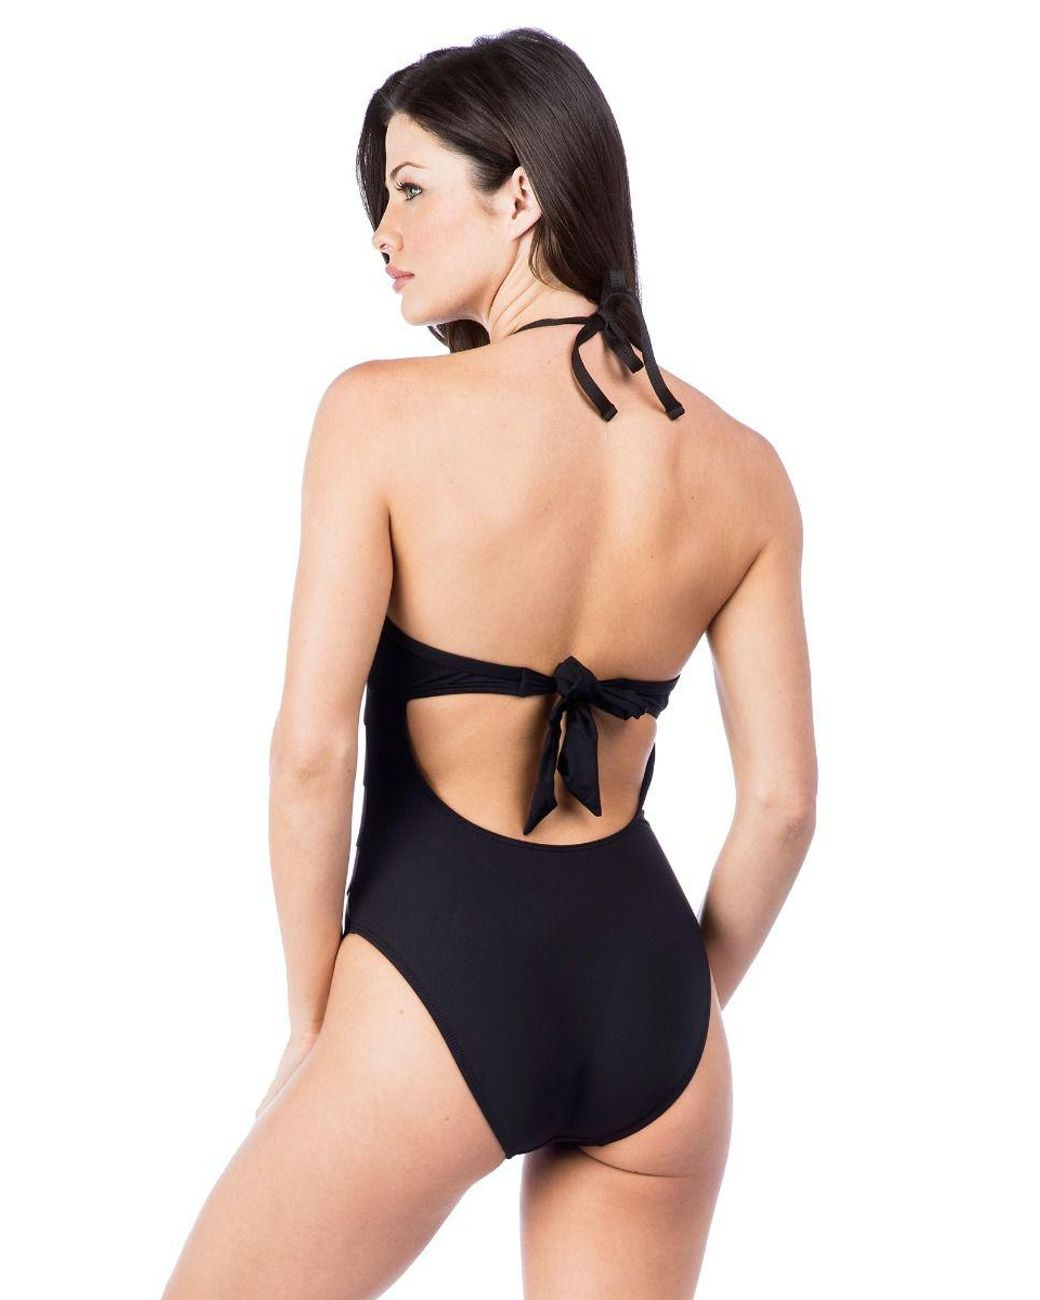 cb1fb39d3c Kenneth Cole Hall Of Fame Solid Push Up Mio One Piece Swimsuit in Black -  Lyst